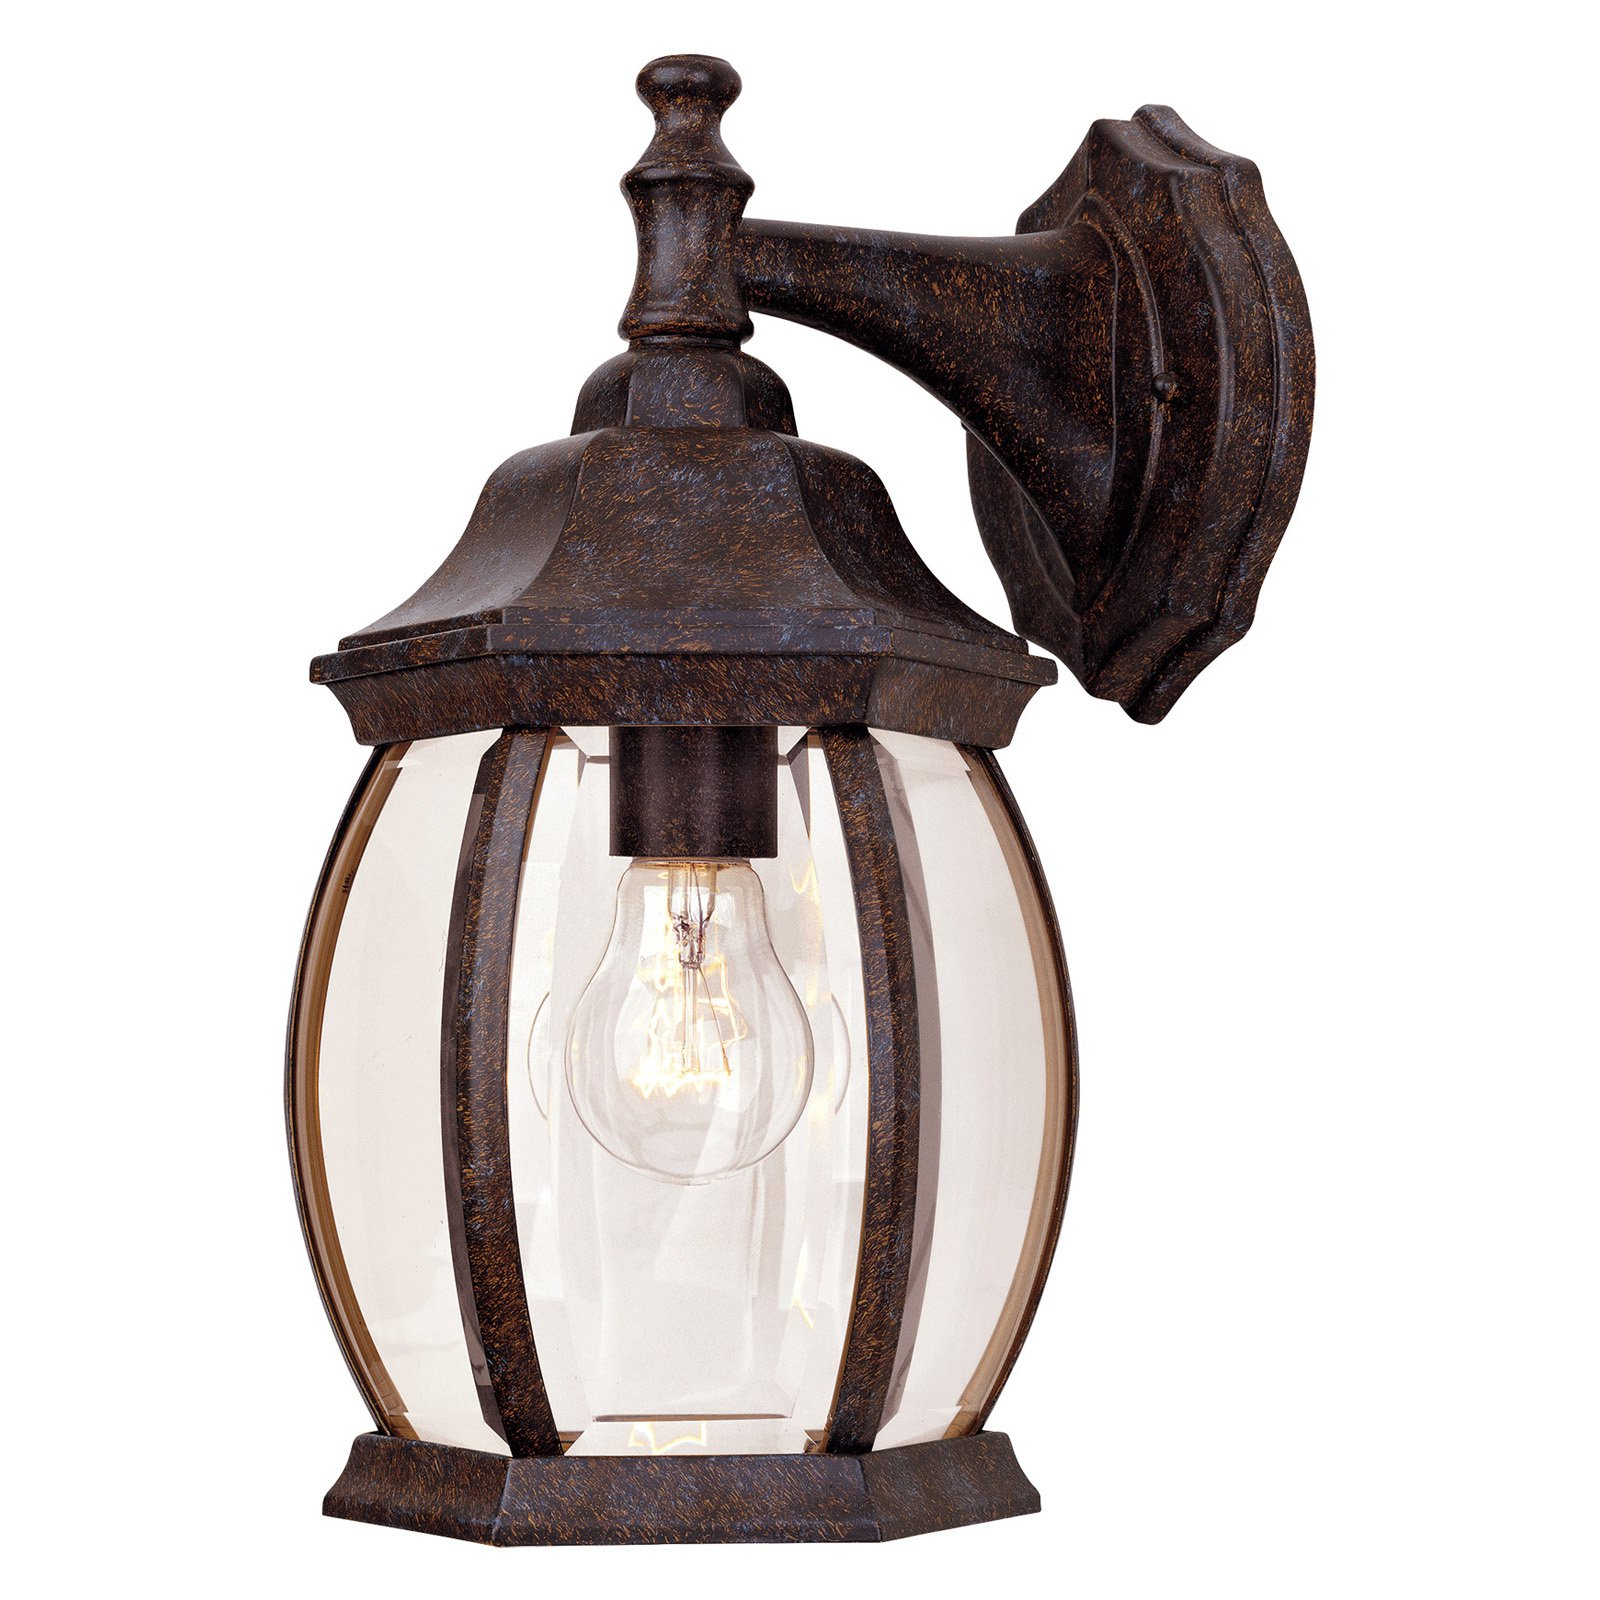 Savoy House Exterior 5-1090-72 Outdoor Wall Lantern